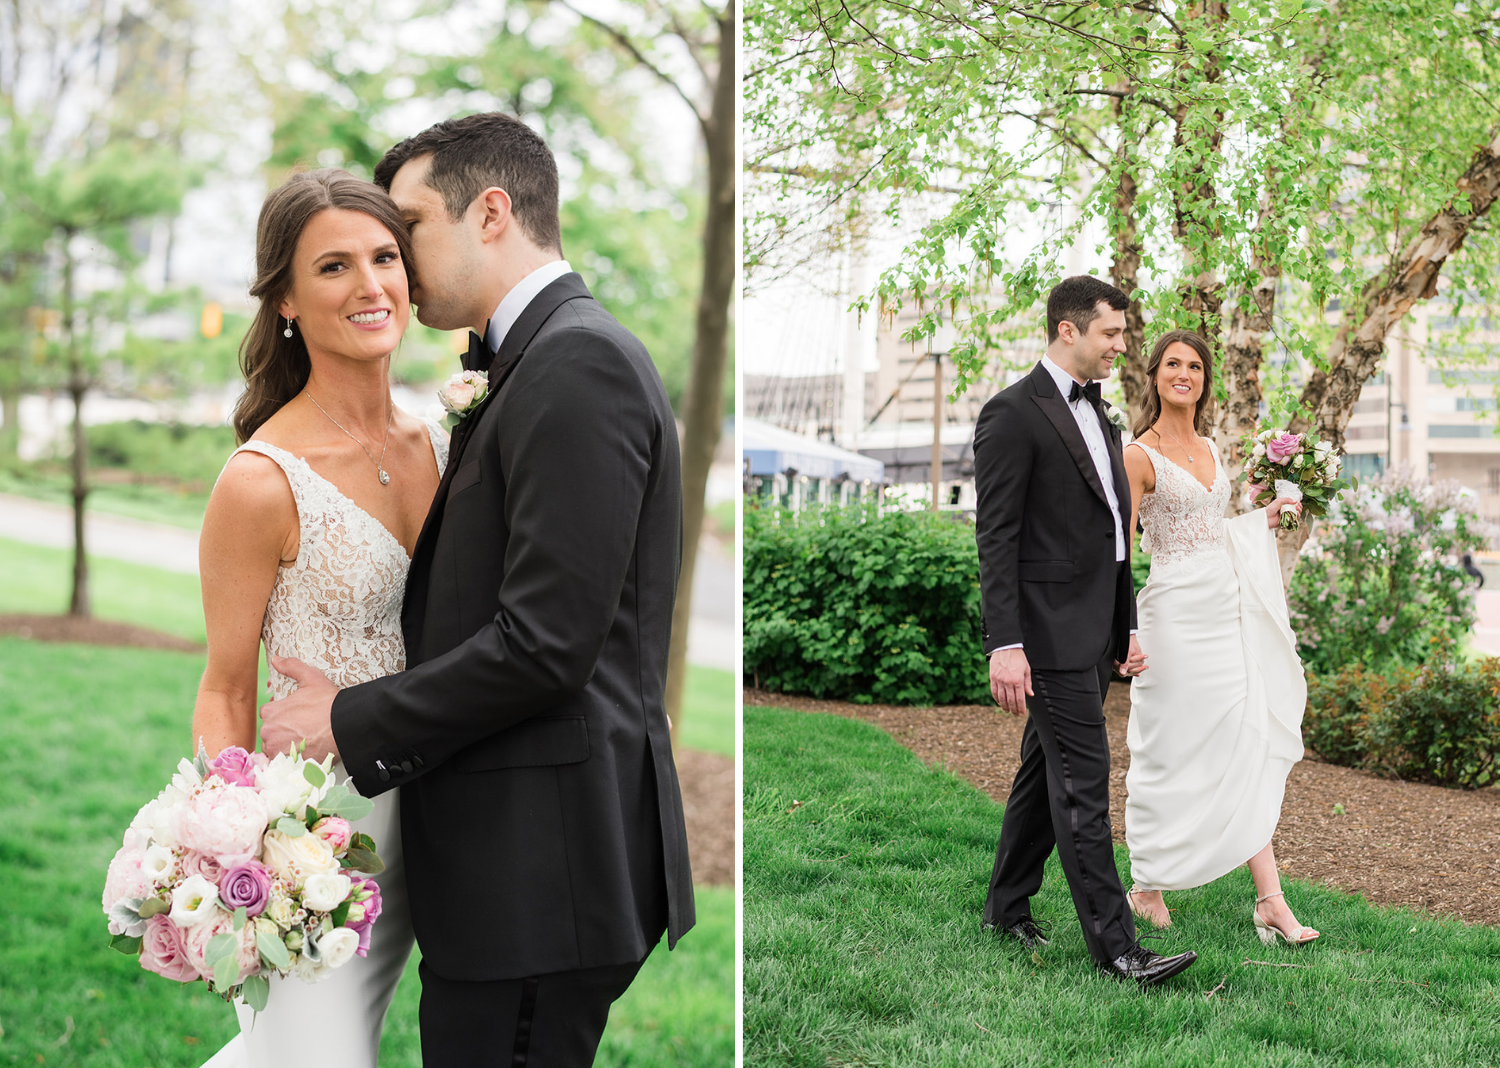 bride and groom share intimate moments between them before their wedding ceremony